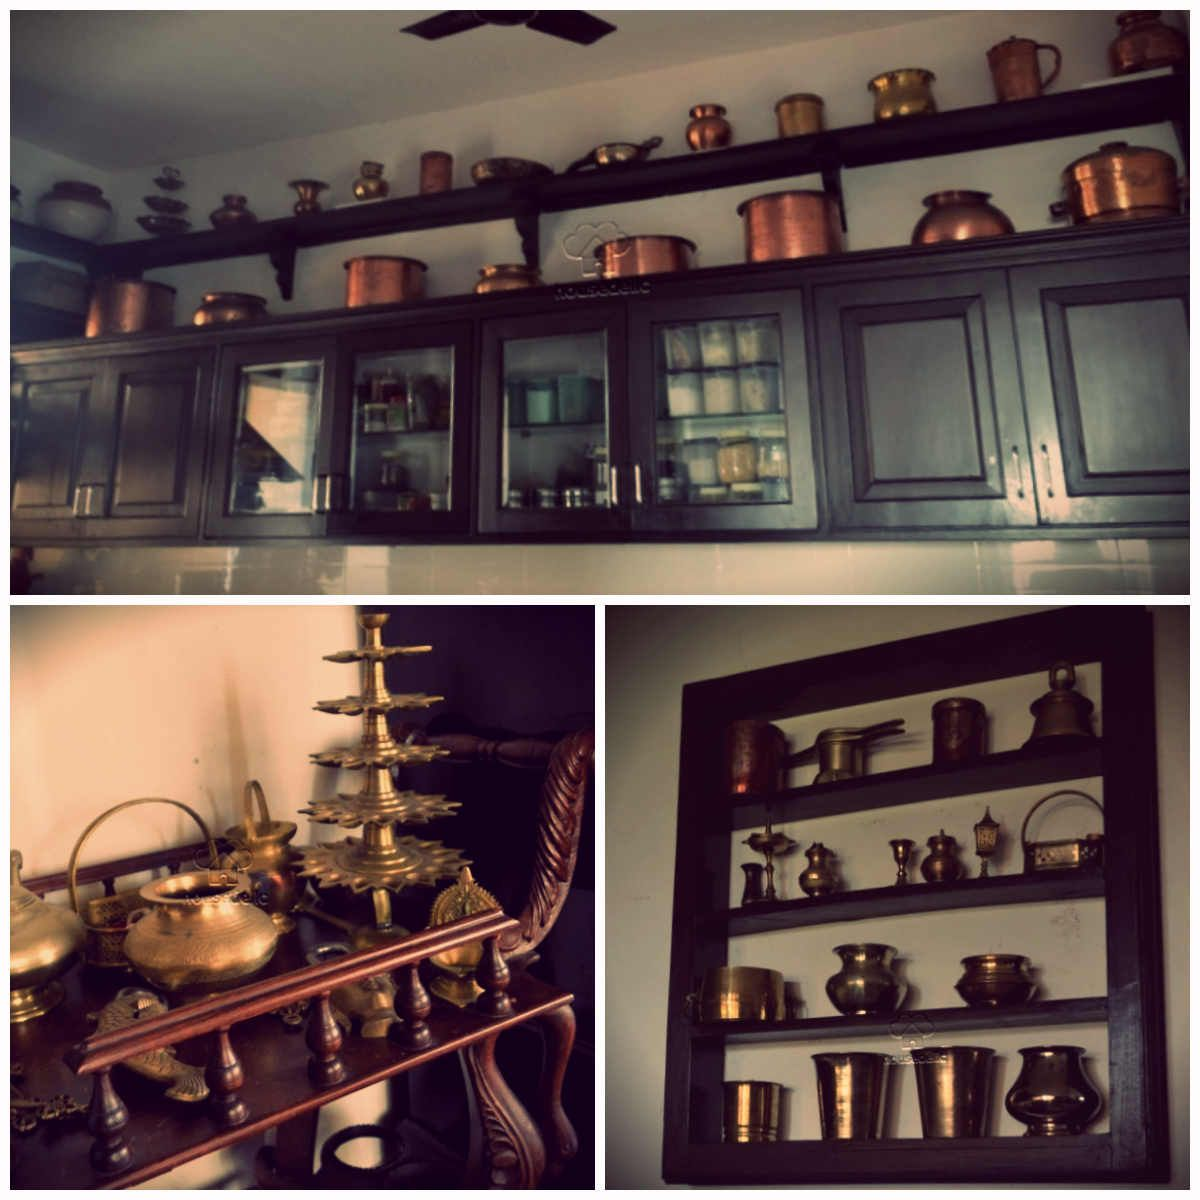 A South Indian Home With A Stunning Display Of Traditional Brass Utensils